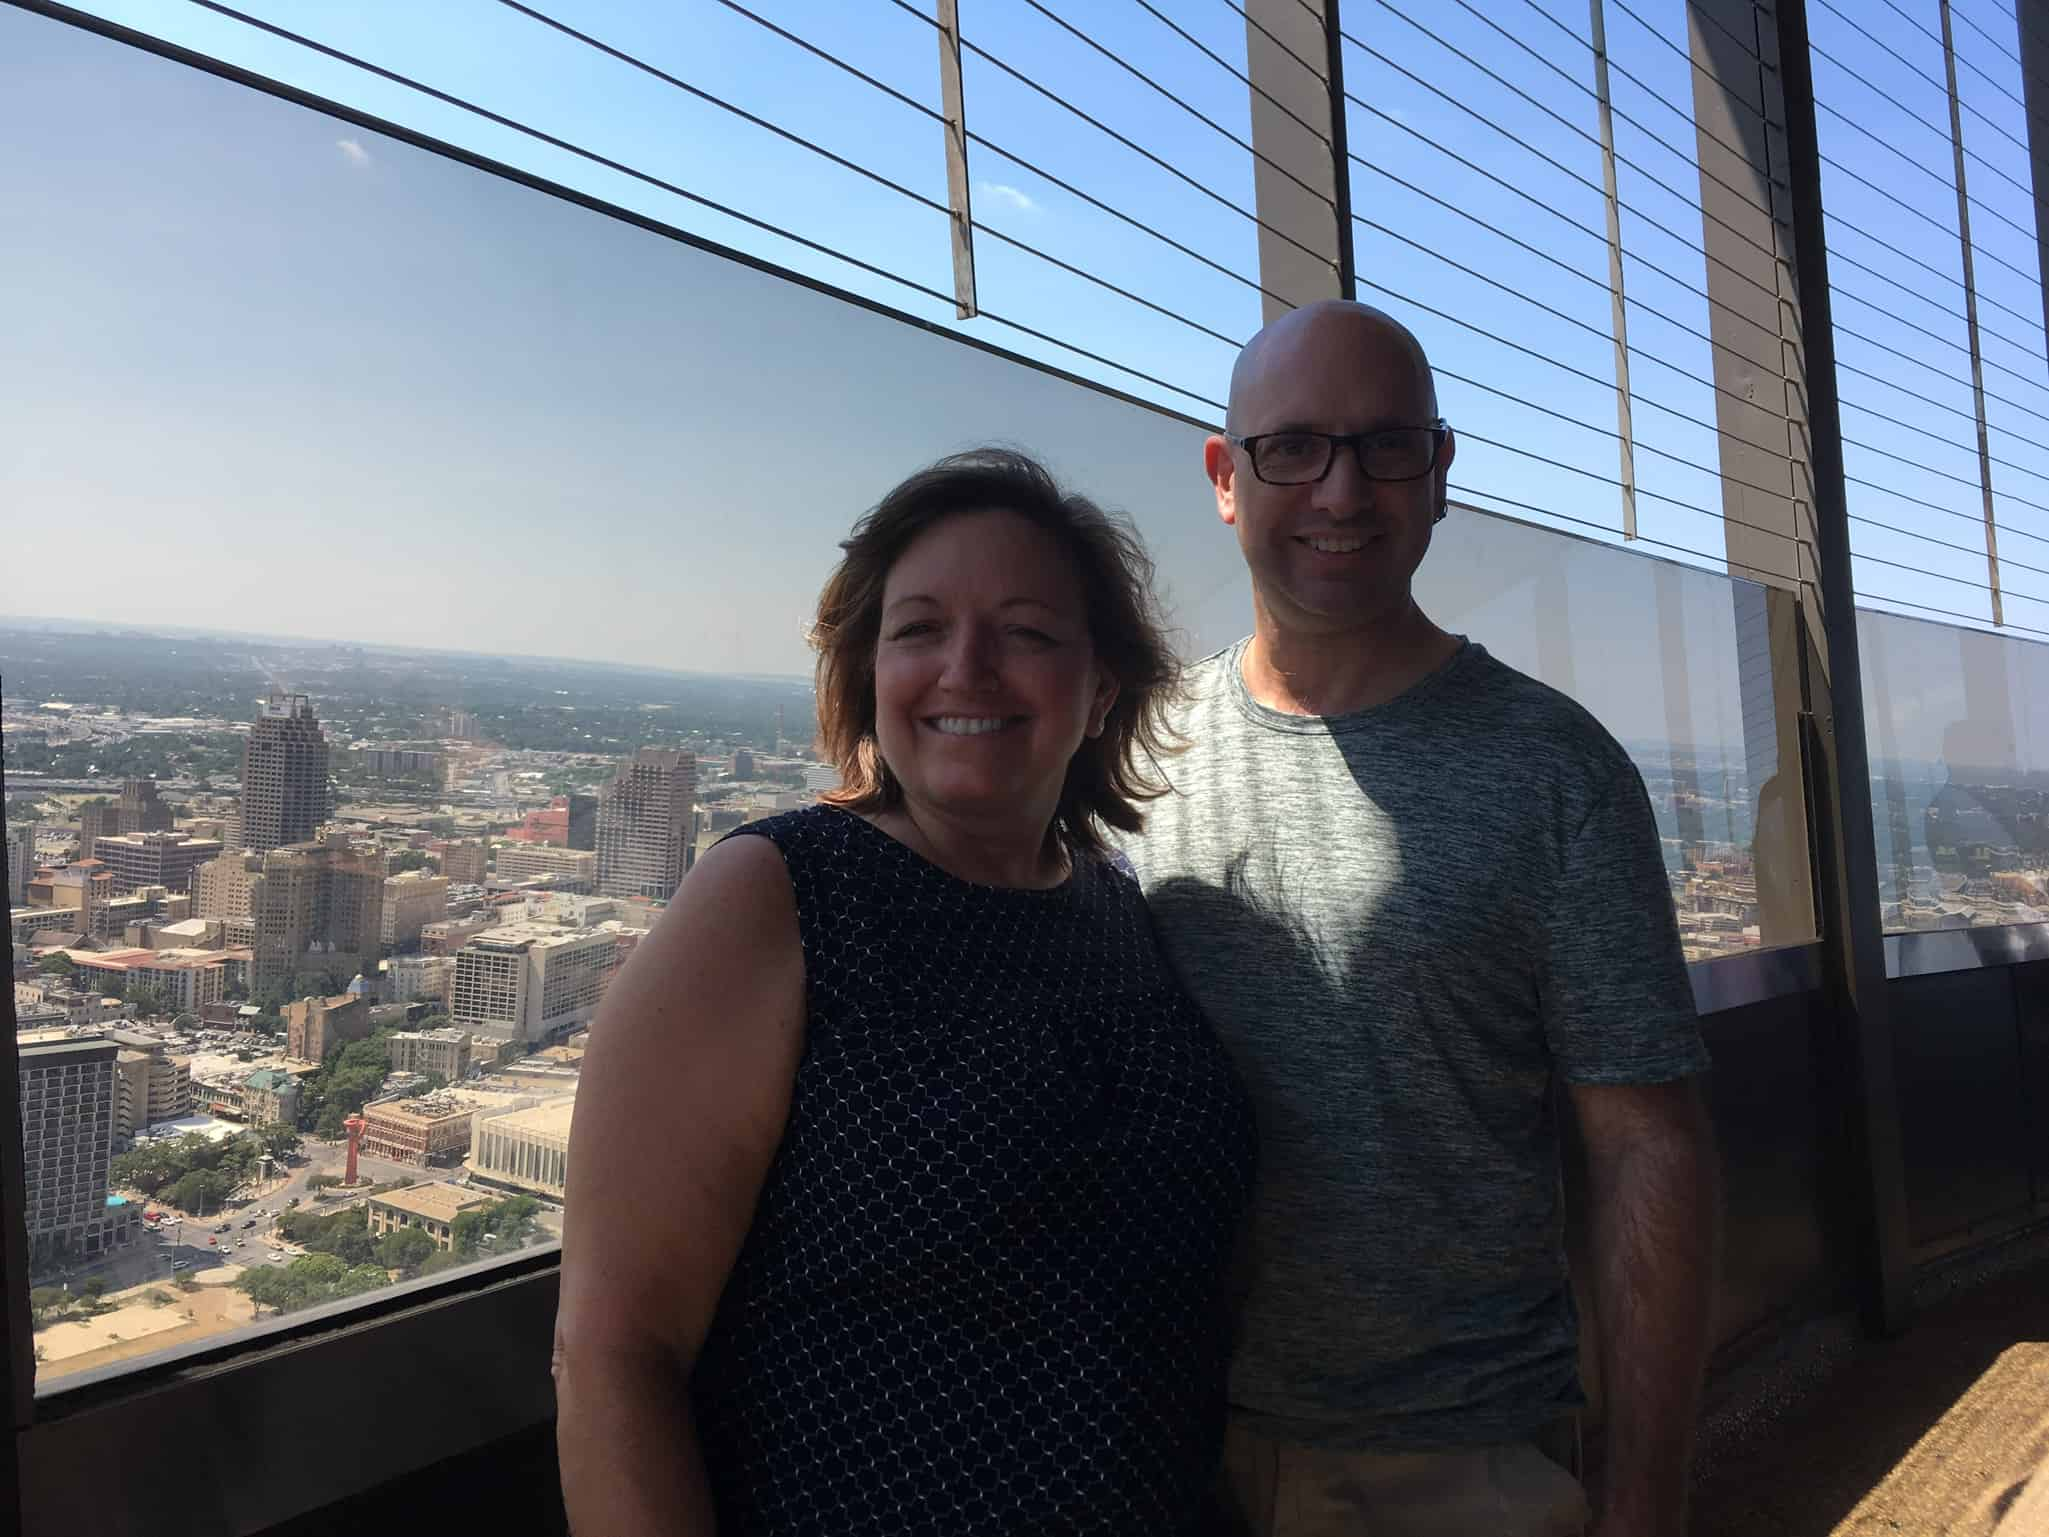 Visiting the Tower of the Americas in San Antonio TX, tips featured by top travel blog, The Common Traveler: Tower of the Americas woman and man on observation deck with San Antonio in background